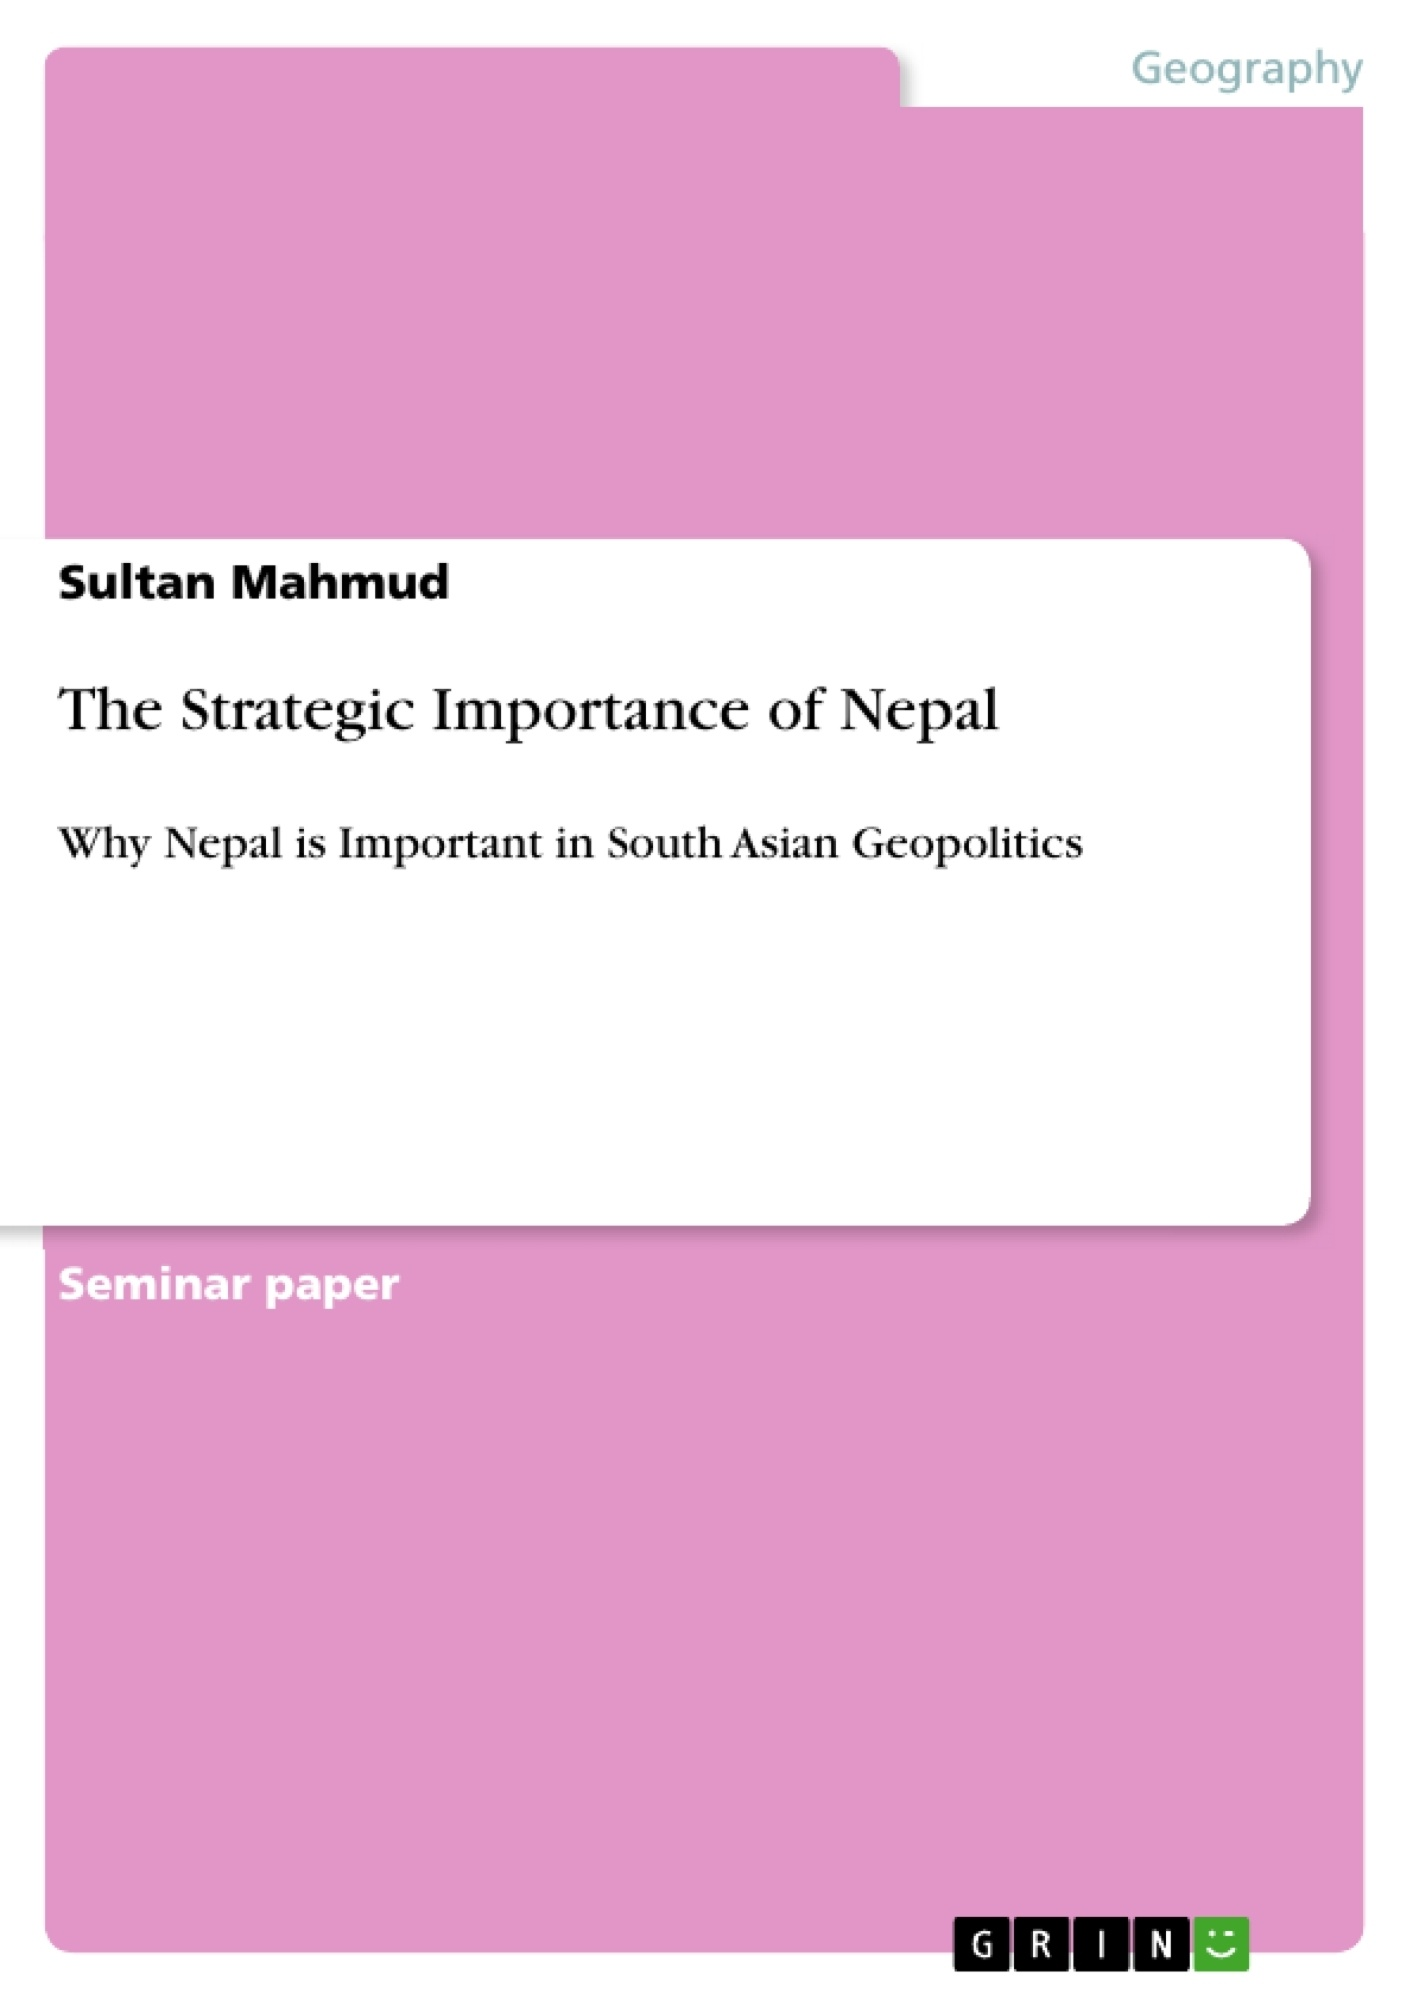 Title: The Strategic Importance of Nepal